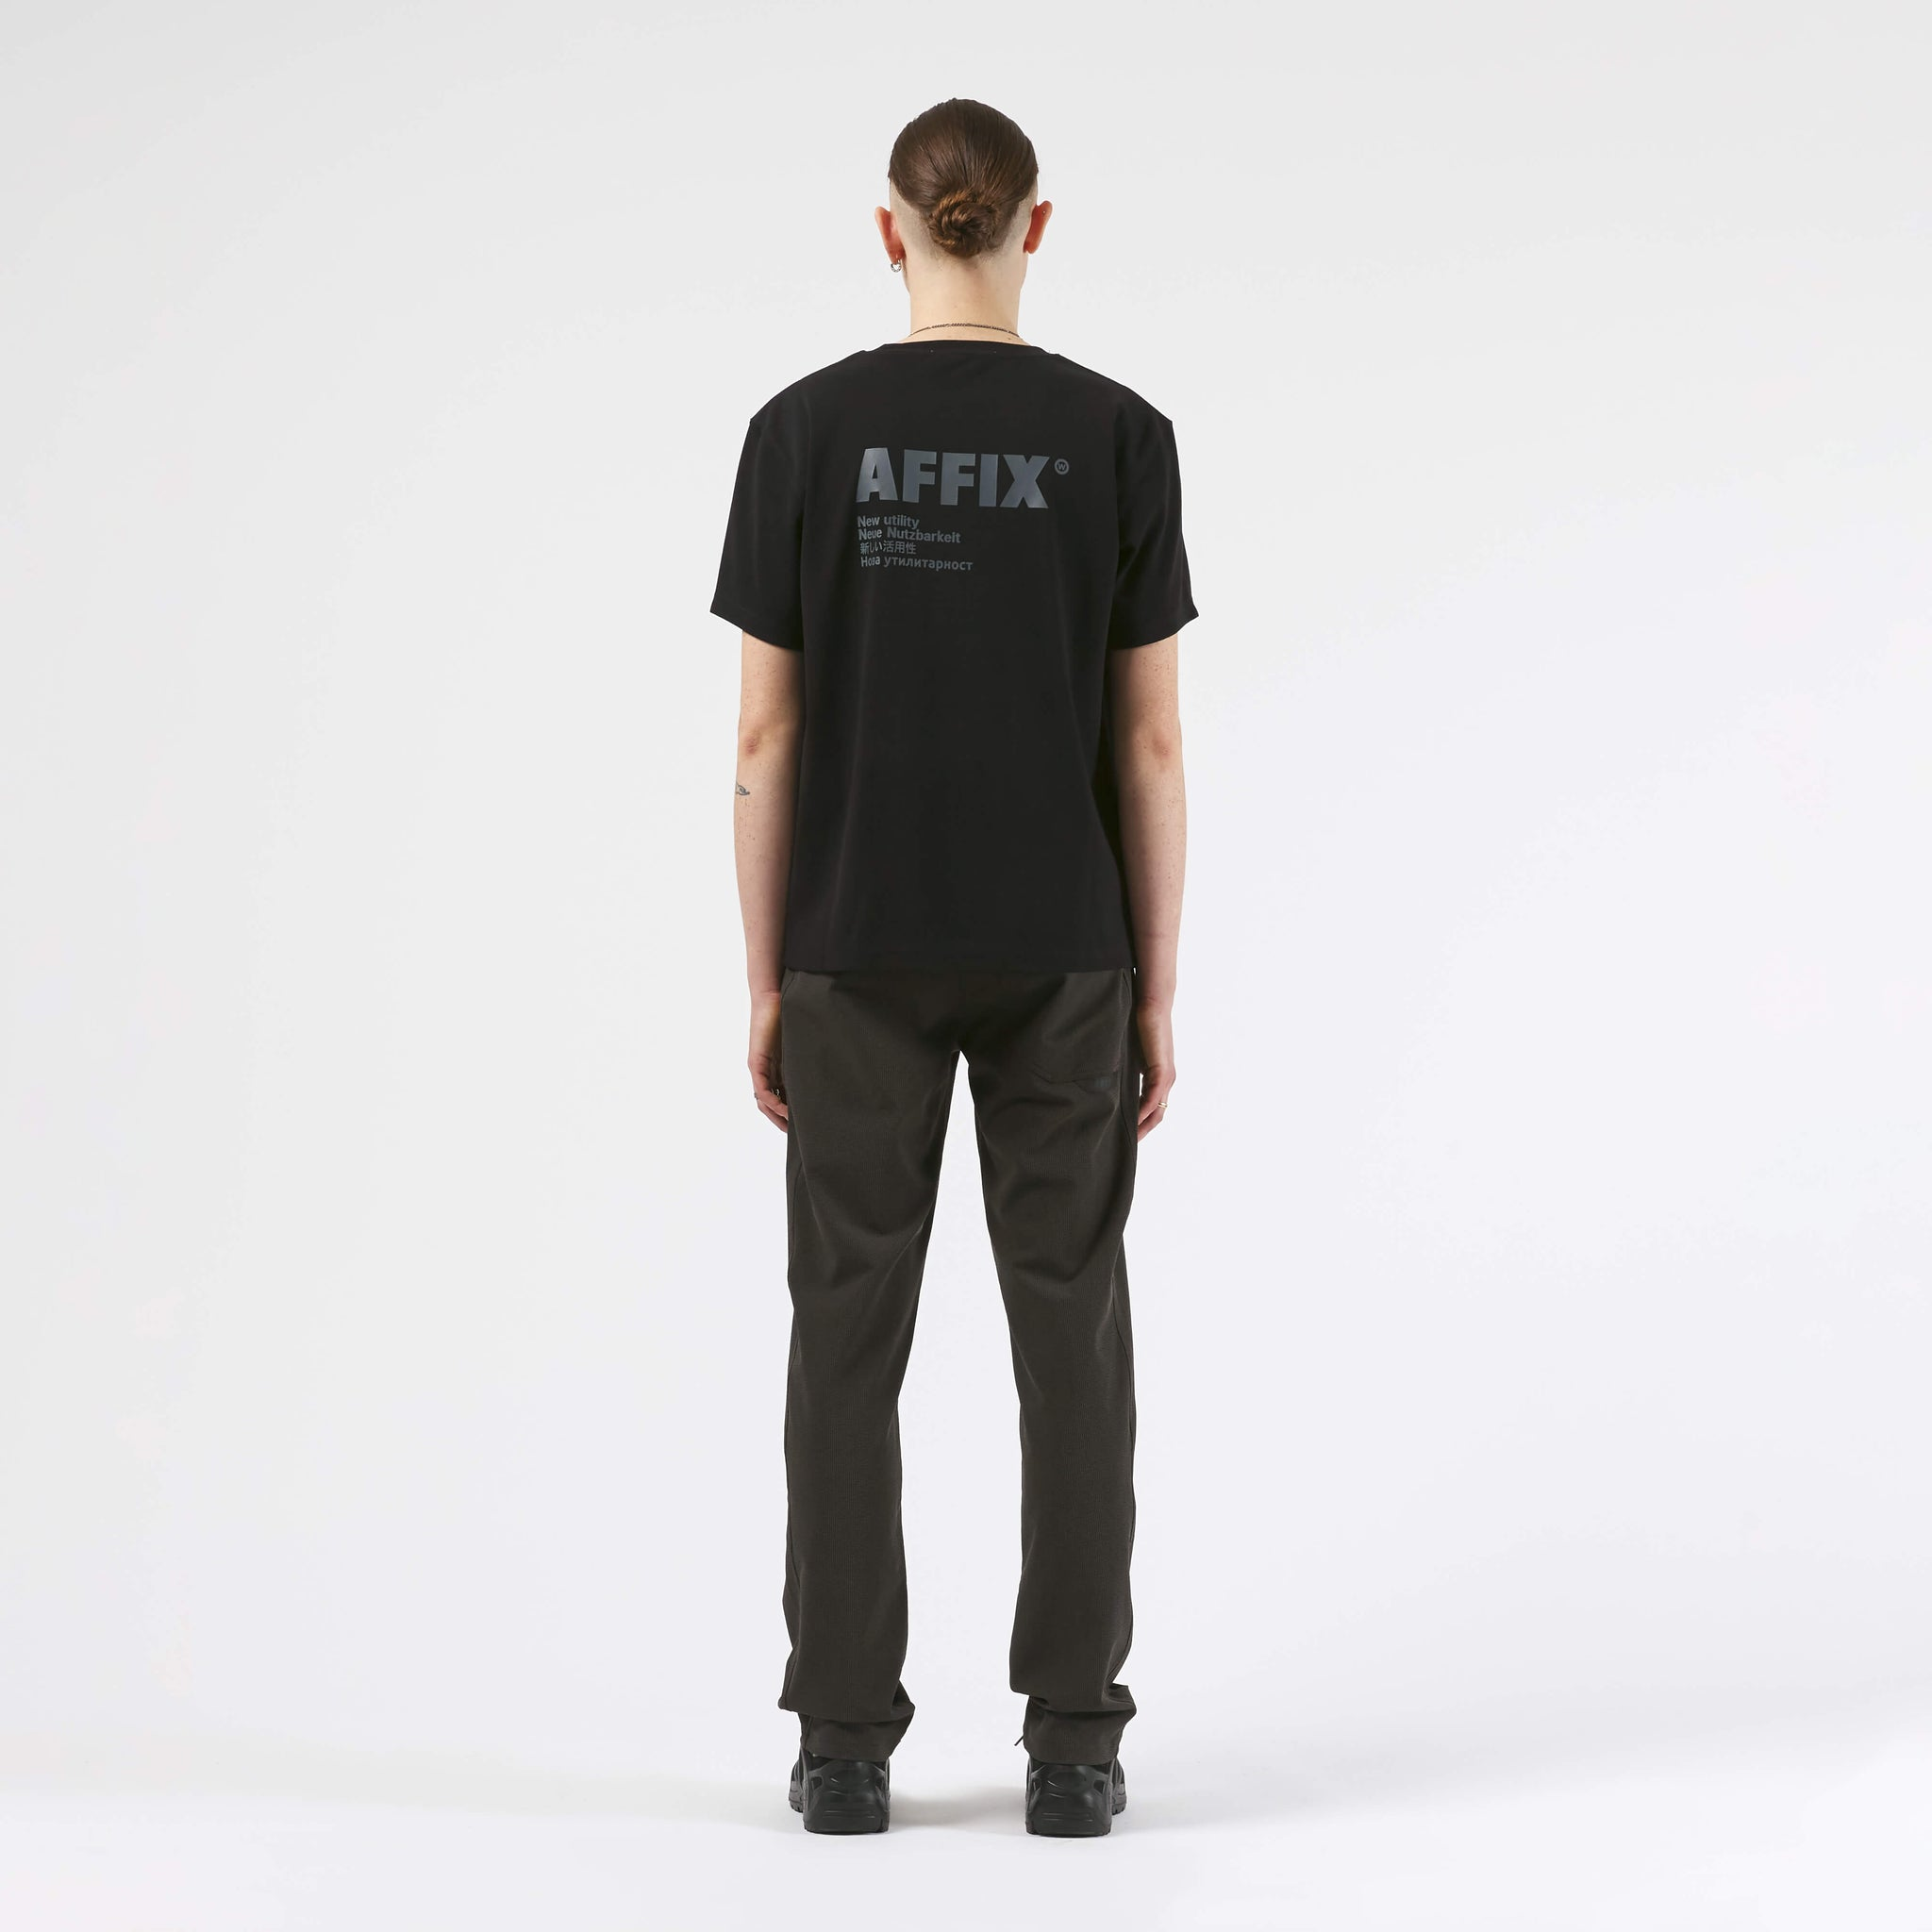 AFFX WRKS AFFIX WORKS STANDARDISED LOGO RIB T-SHIRT BLACK